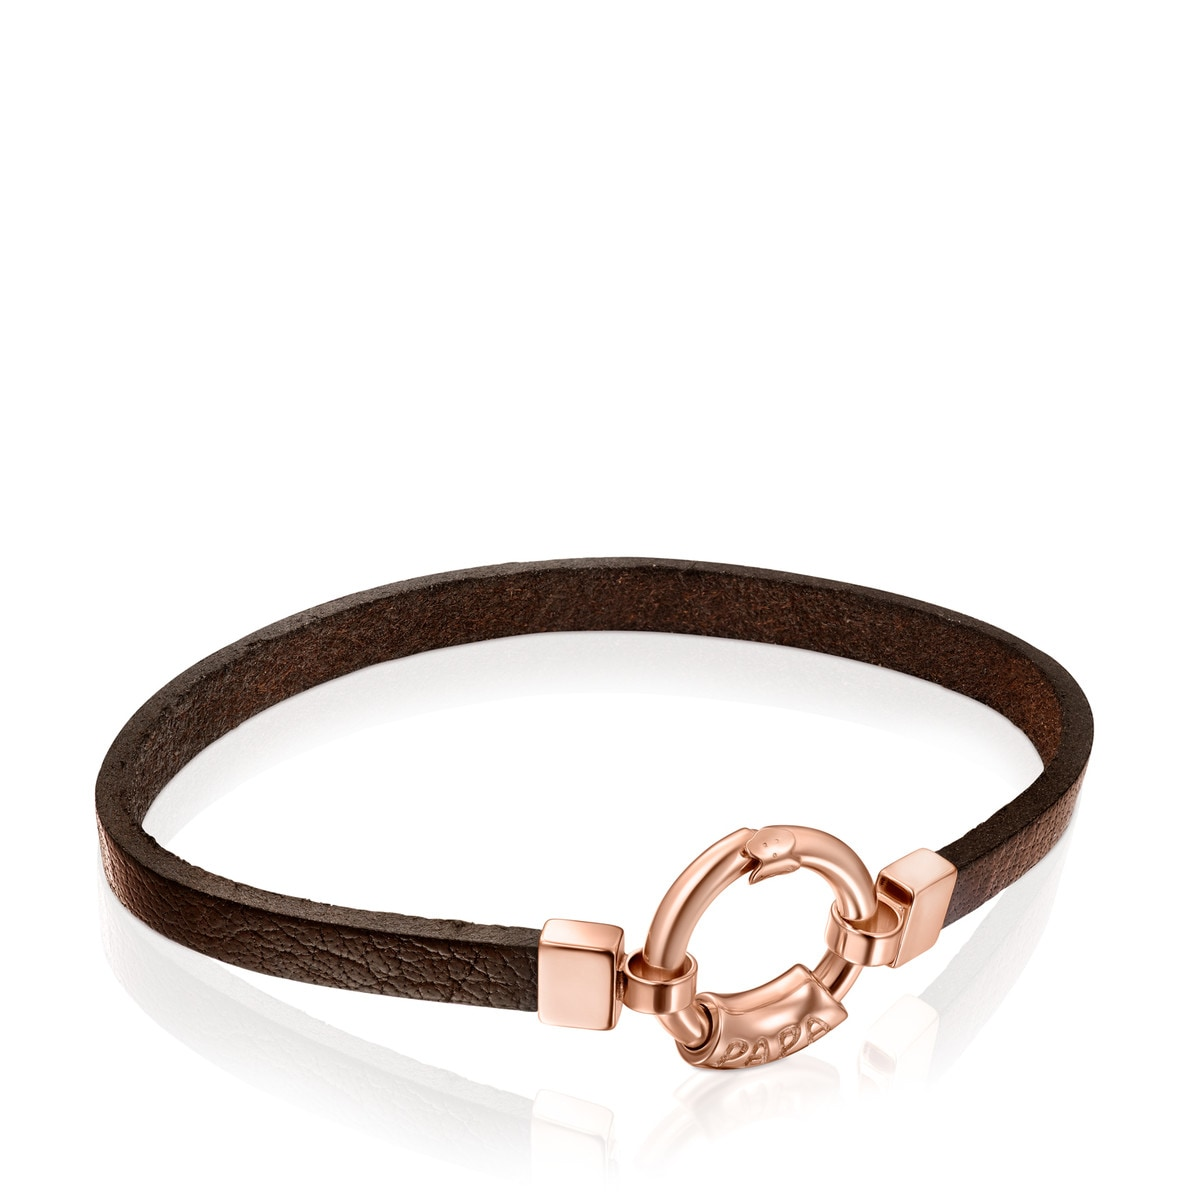 TOUS Papa Bracelet in Rose Gold Vermeil and brown Leather